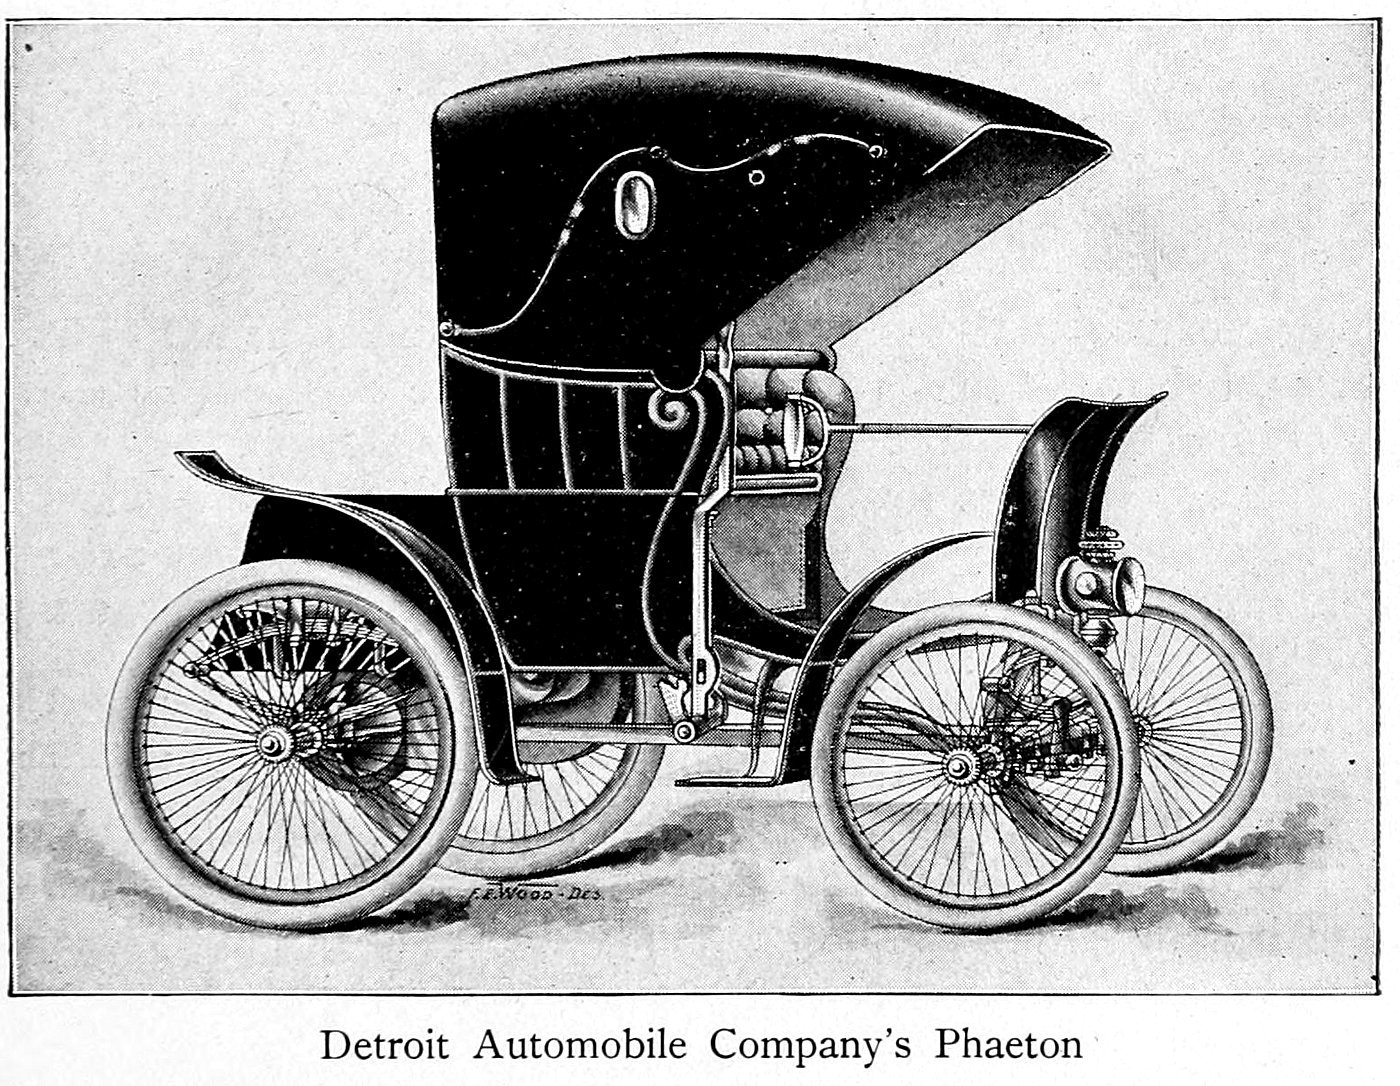 Detroit Automobile Company's Phaeton motor car (1900)